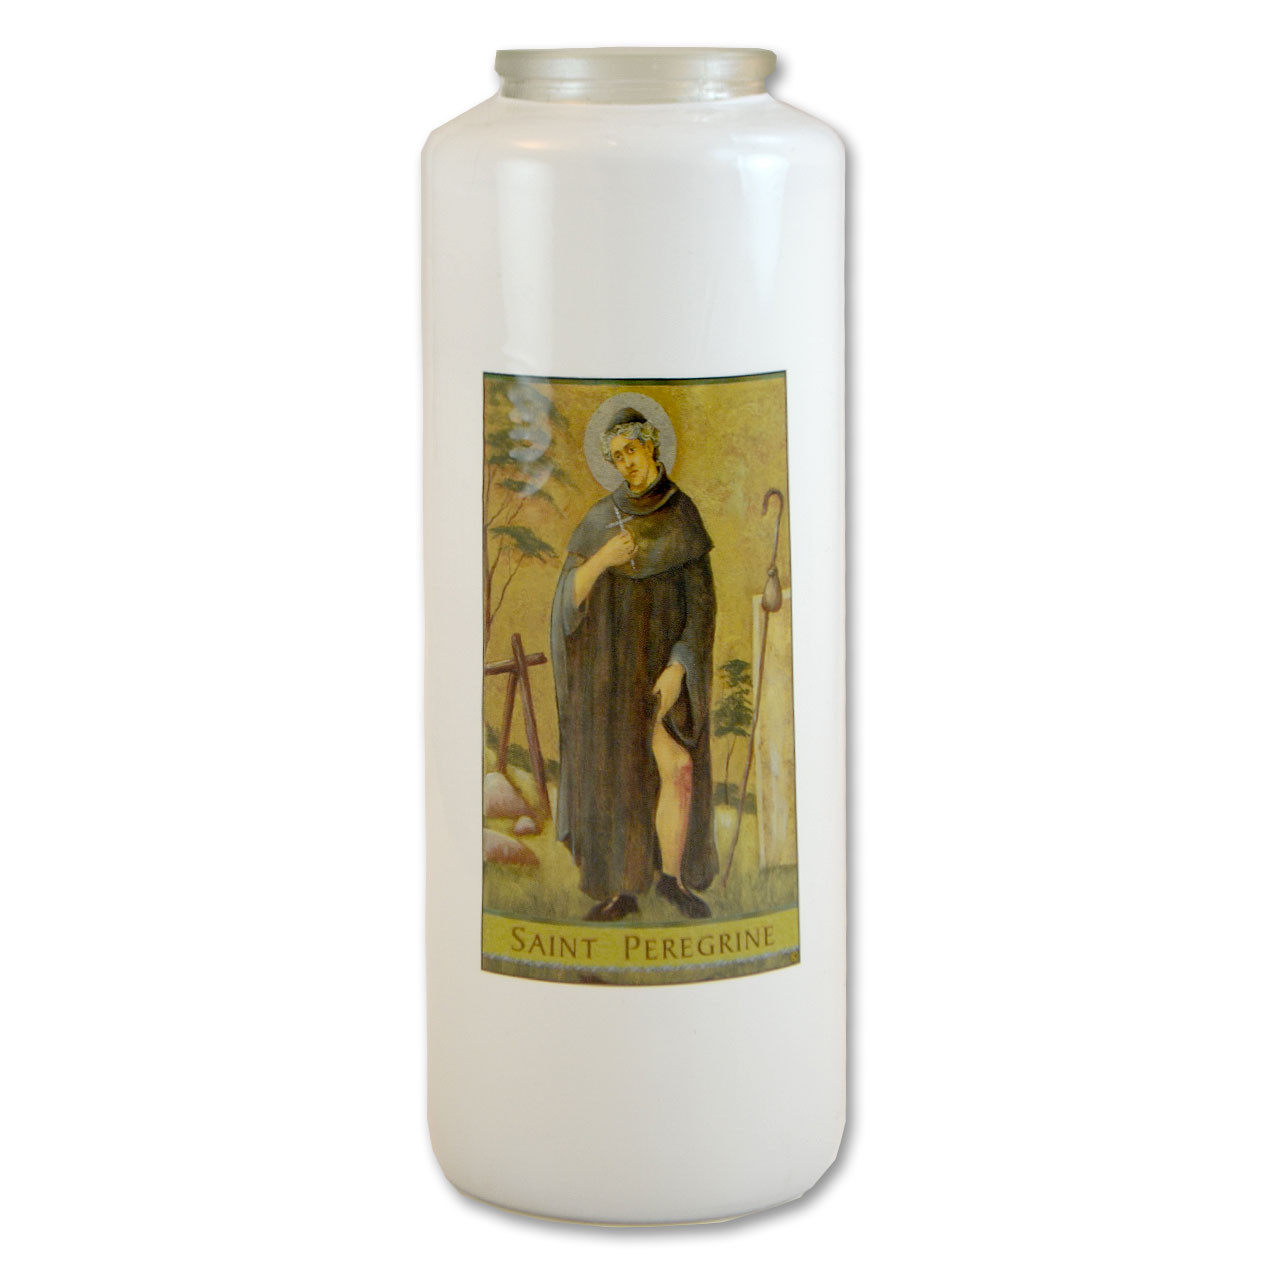 St. Peregrine Votive Candle - 6 day